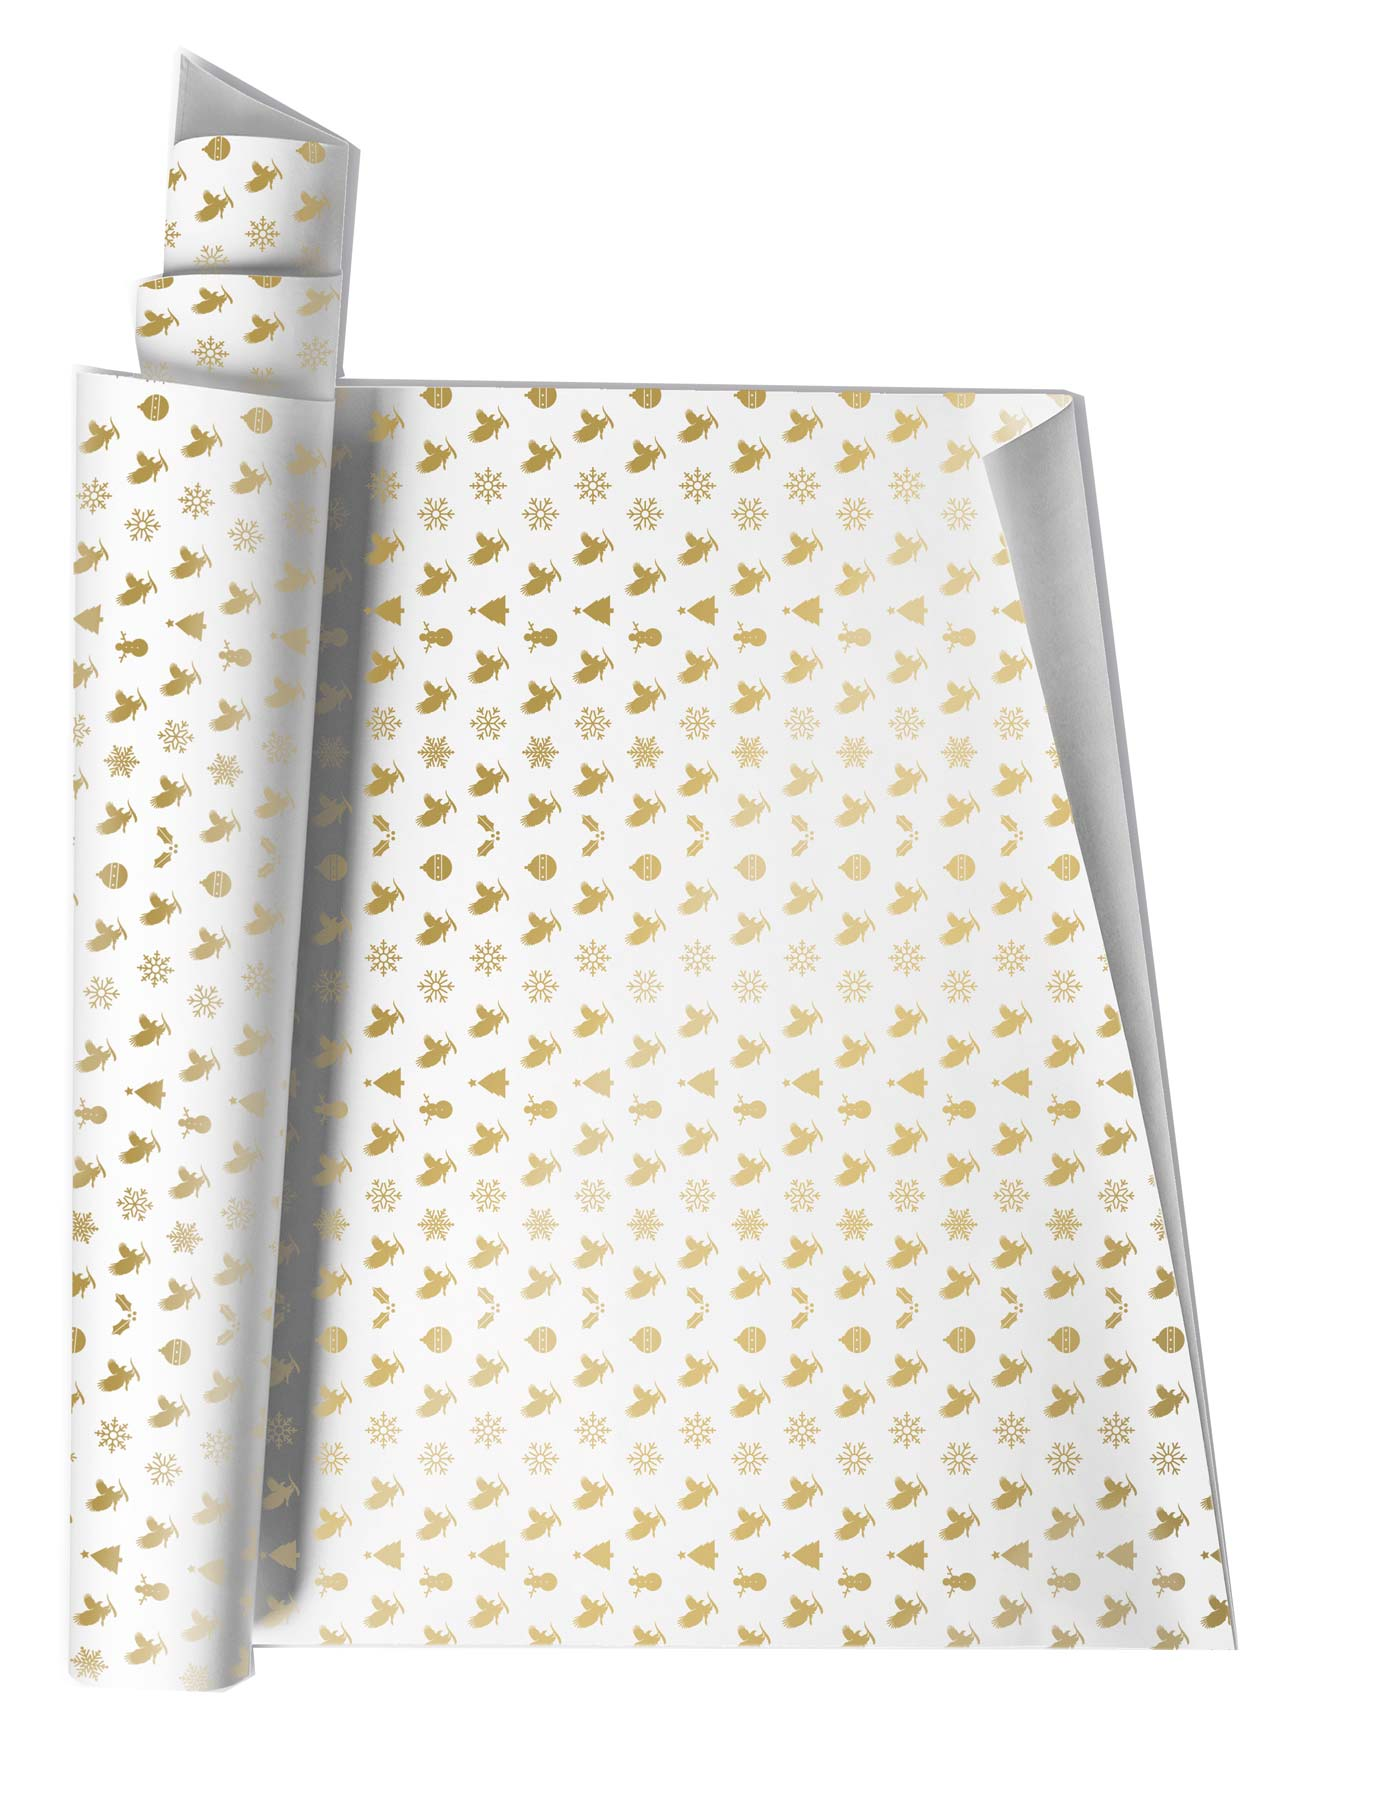 Build the excitement with this beautiful, classic white and gold wrapping paper.